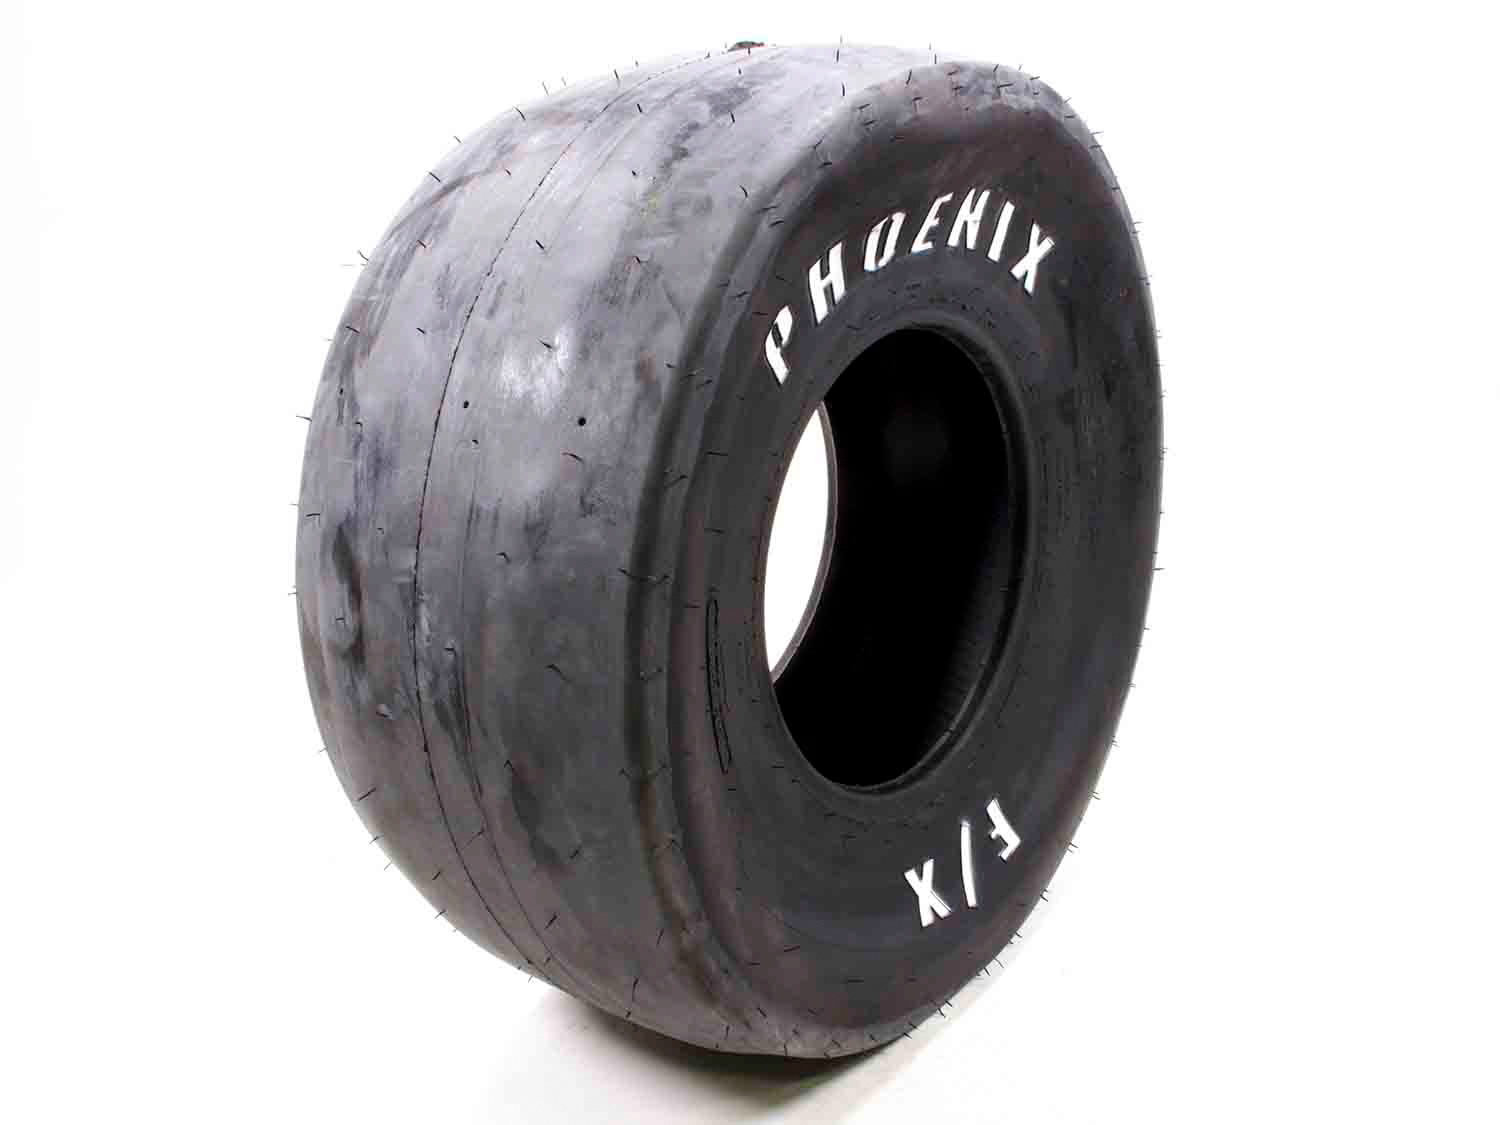 Phoenix Racing Tires PH56R Tire, Drag FX Slick, 32.0 x 14.5-15, Radial, F9 Compound, White Letter Sidewall, Each